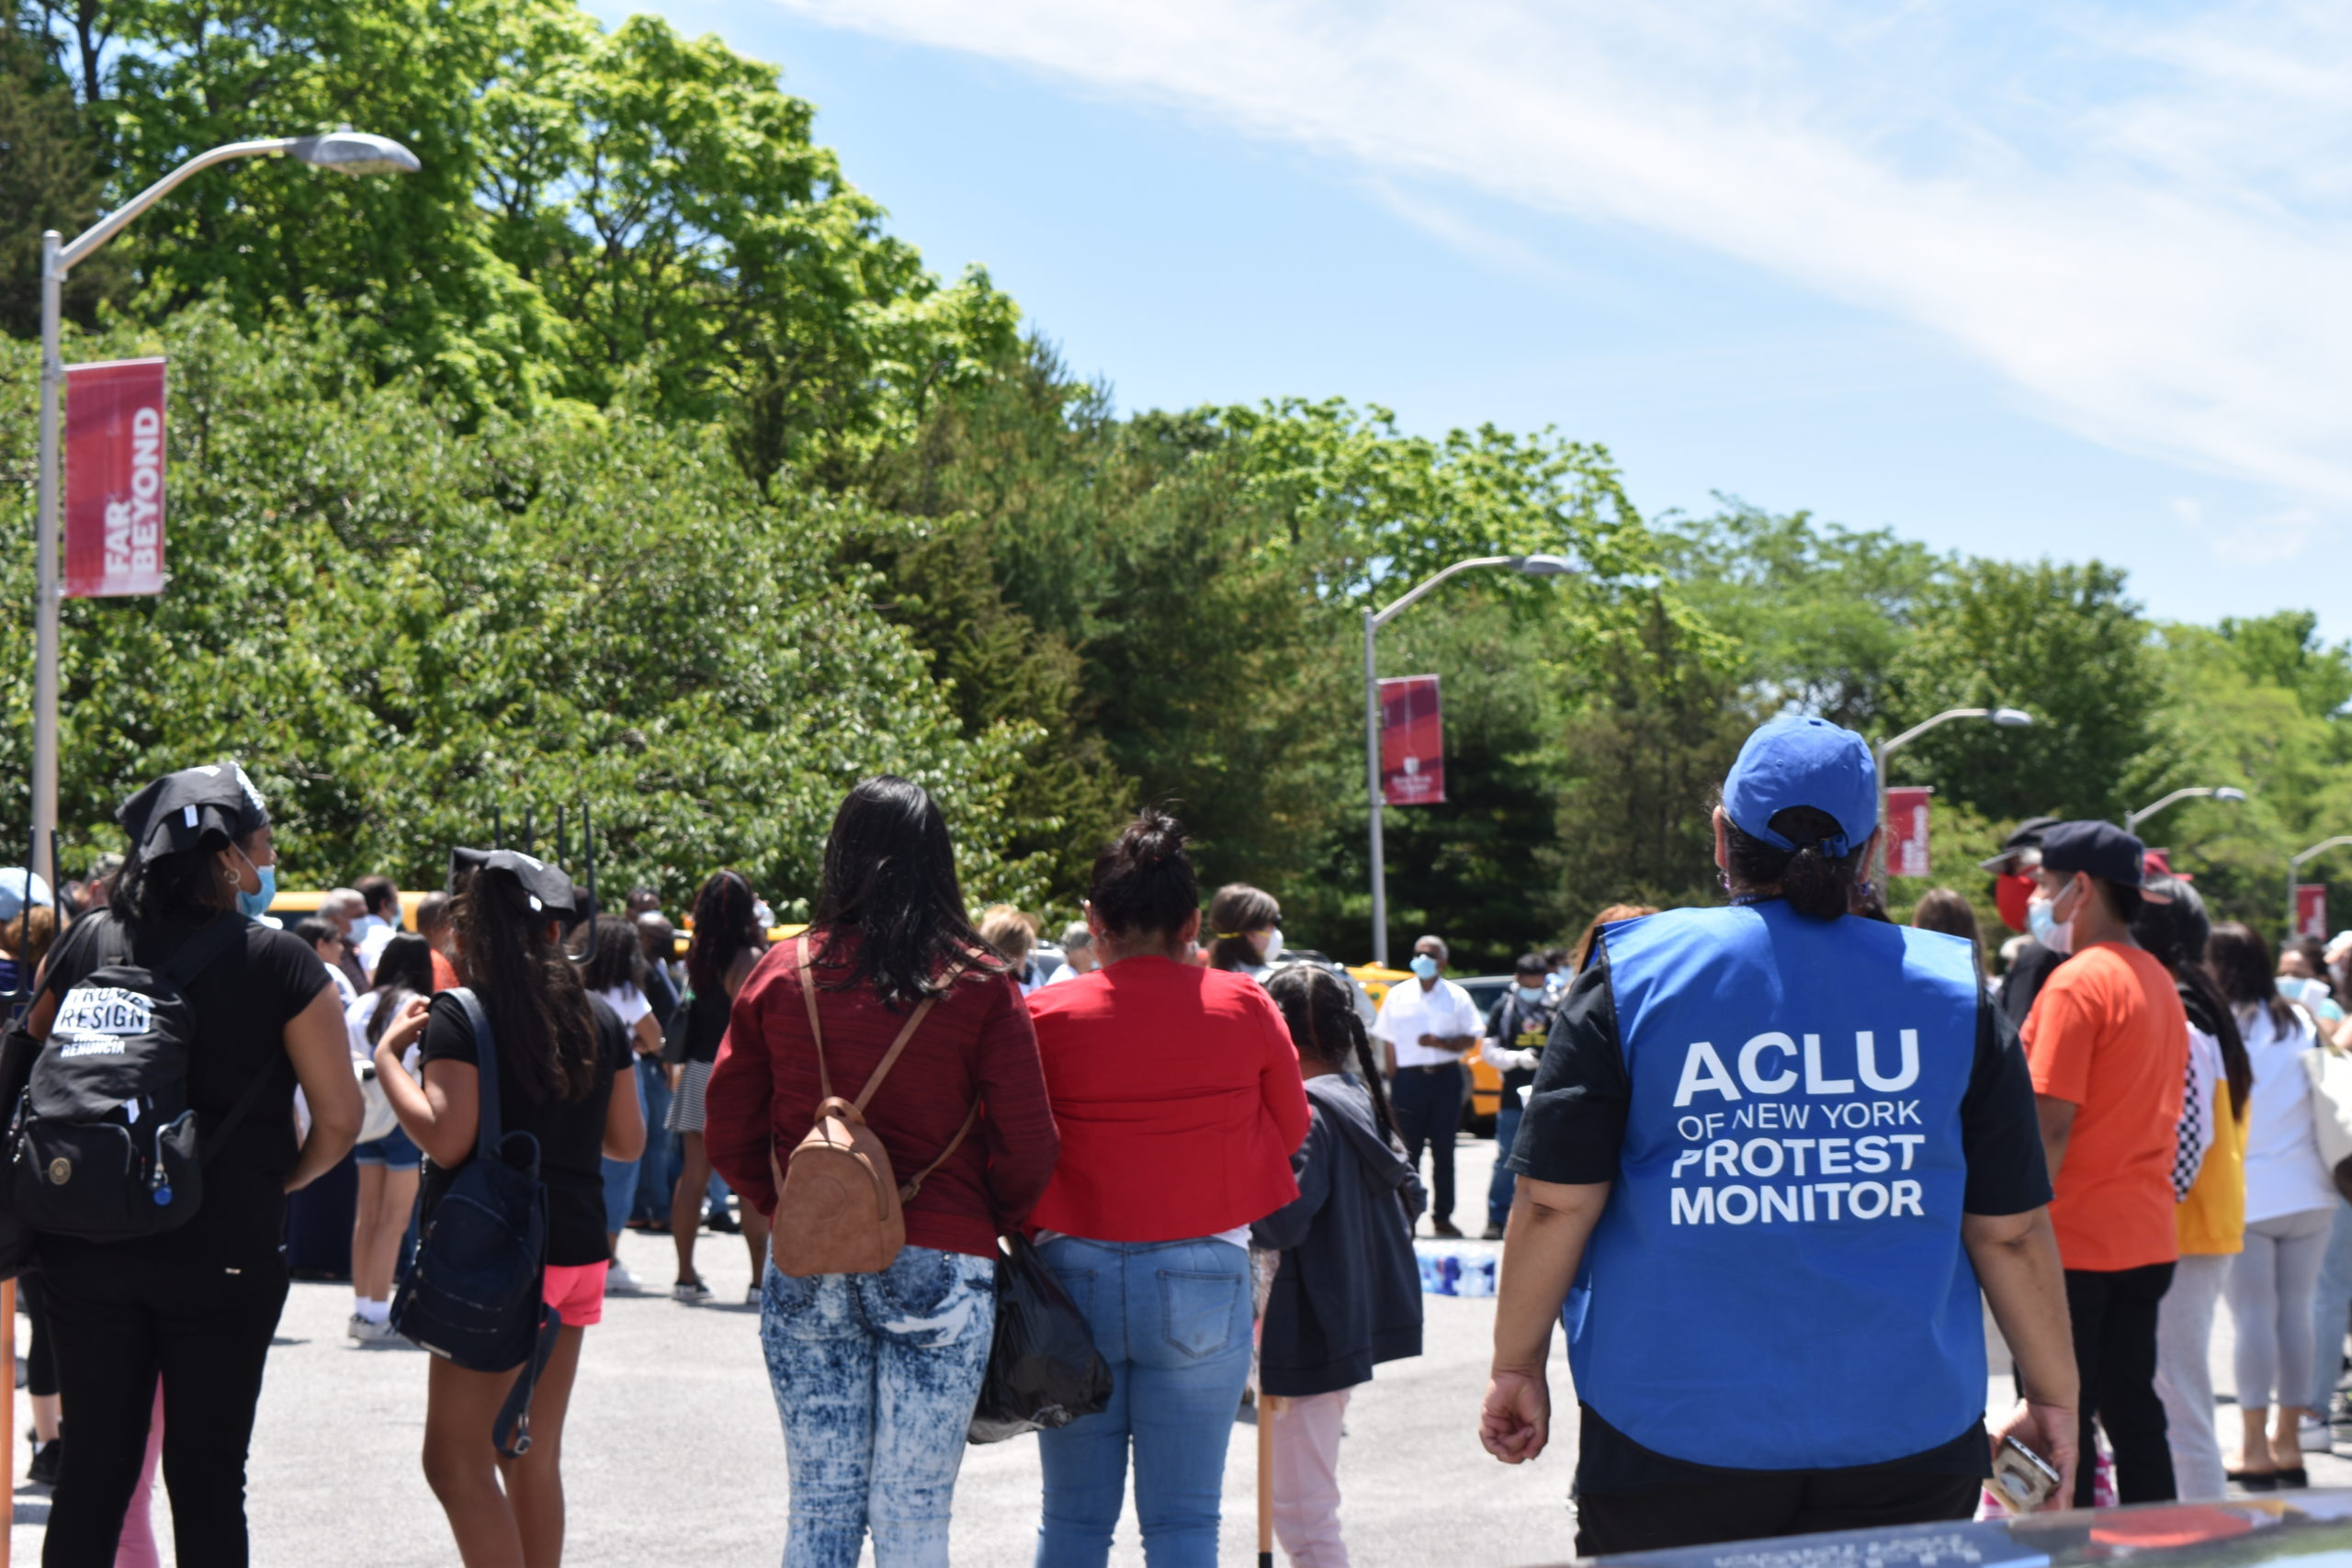 Before traveling to former New York City Mayor Michael Bloomberg's home, protesters in the caravan gathered in the parking lot of Stony Brook University's Southampton campus.